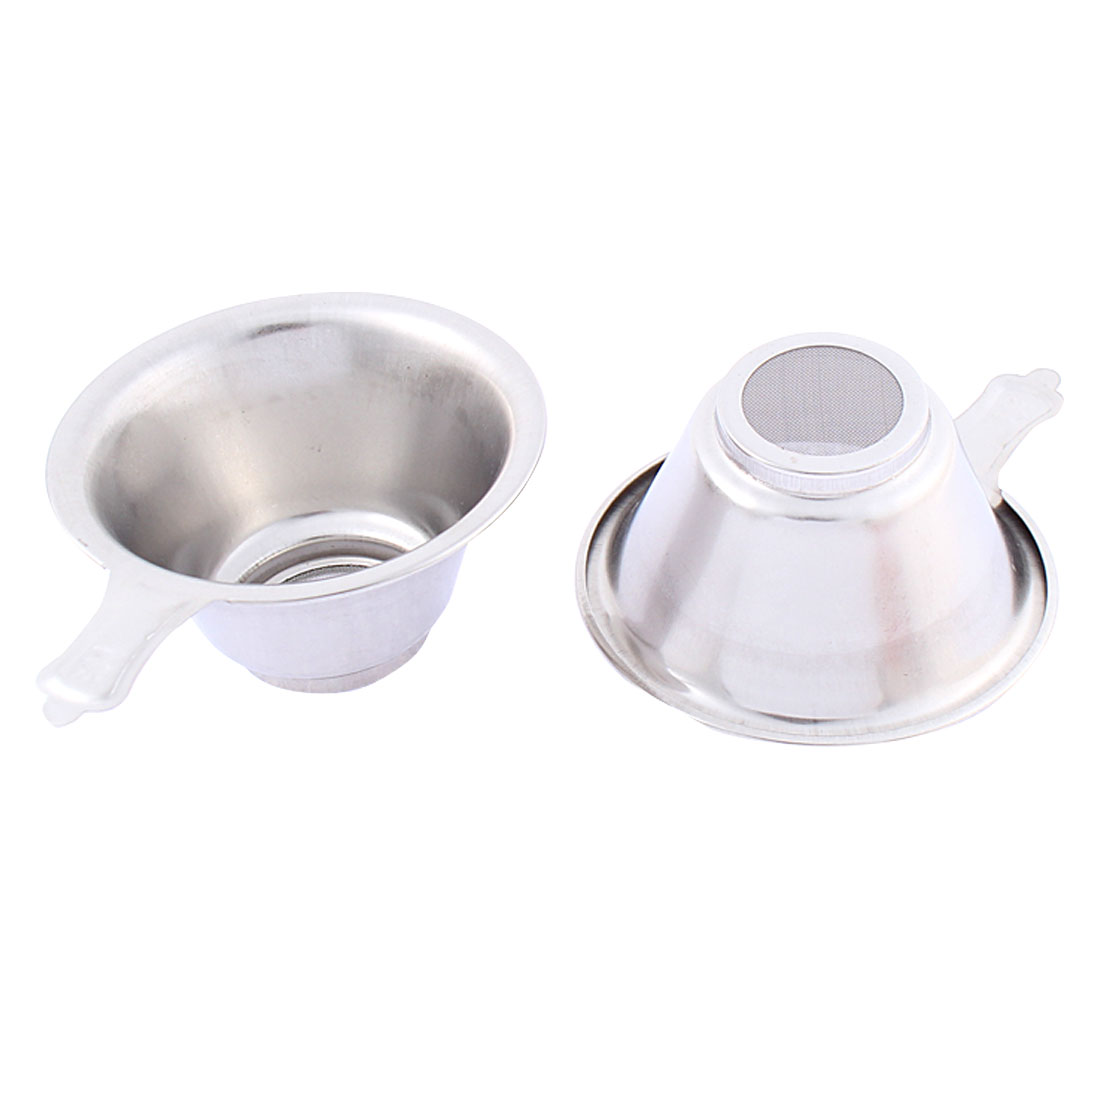 Stainless Steel Mesh Bottom Tea Bowl Strainer Filter 74mm Dia 2 Pcs